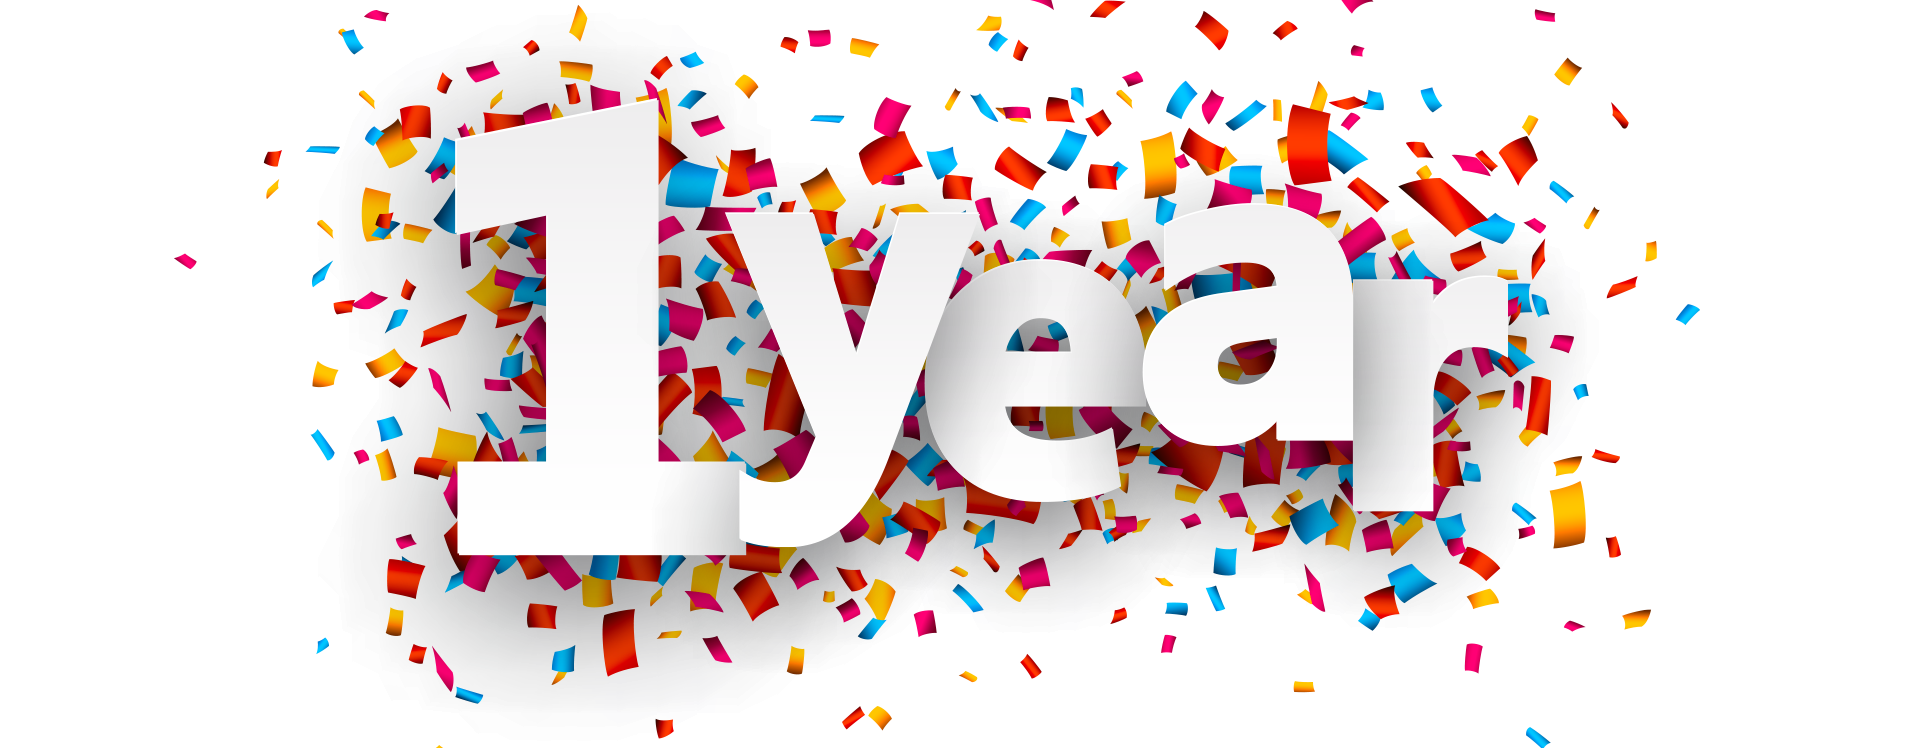 1 year anniversary clip art graphic royalty free library One year anniversary | Blog | Kingdom Maintenance Services | Fife graphic royalty free library